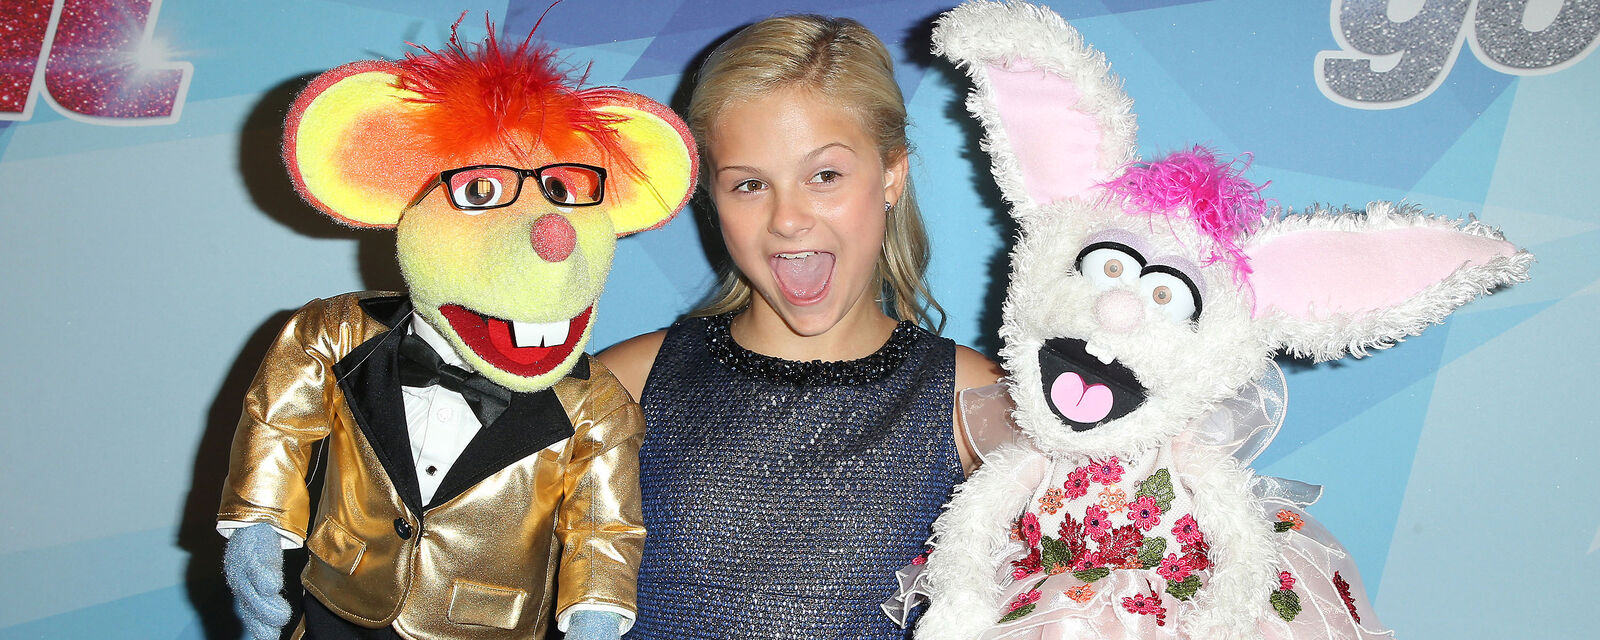 Darci Lynne Tickets (18+ or accompanied by adult)